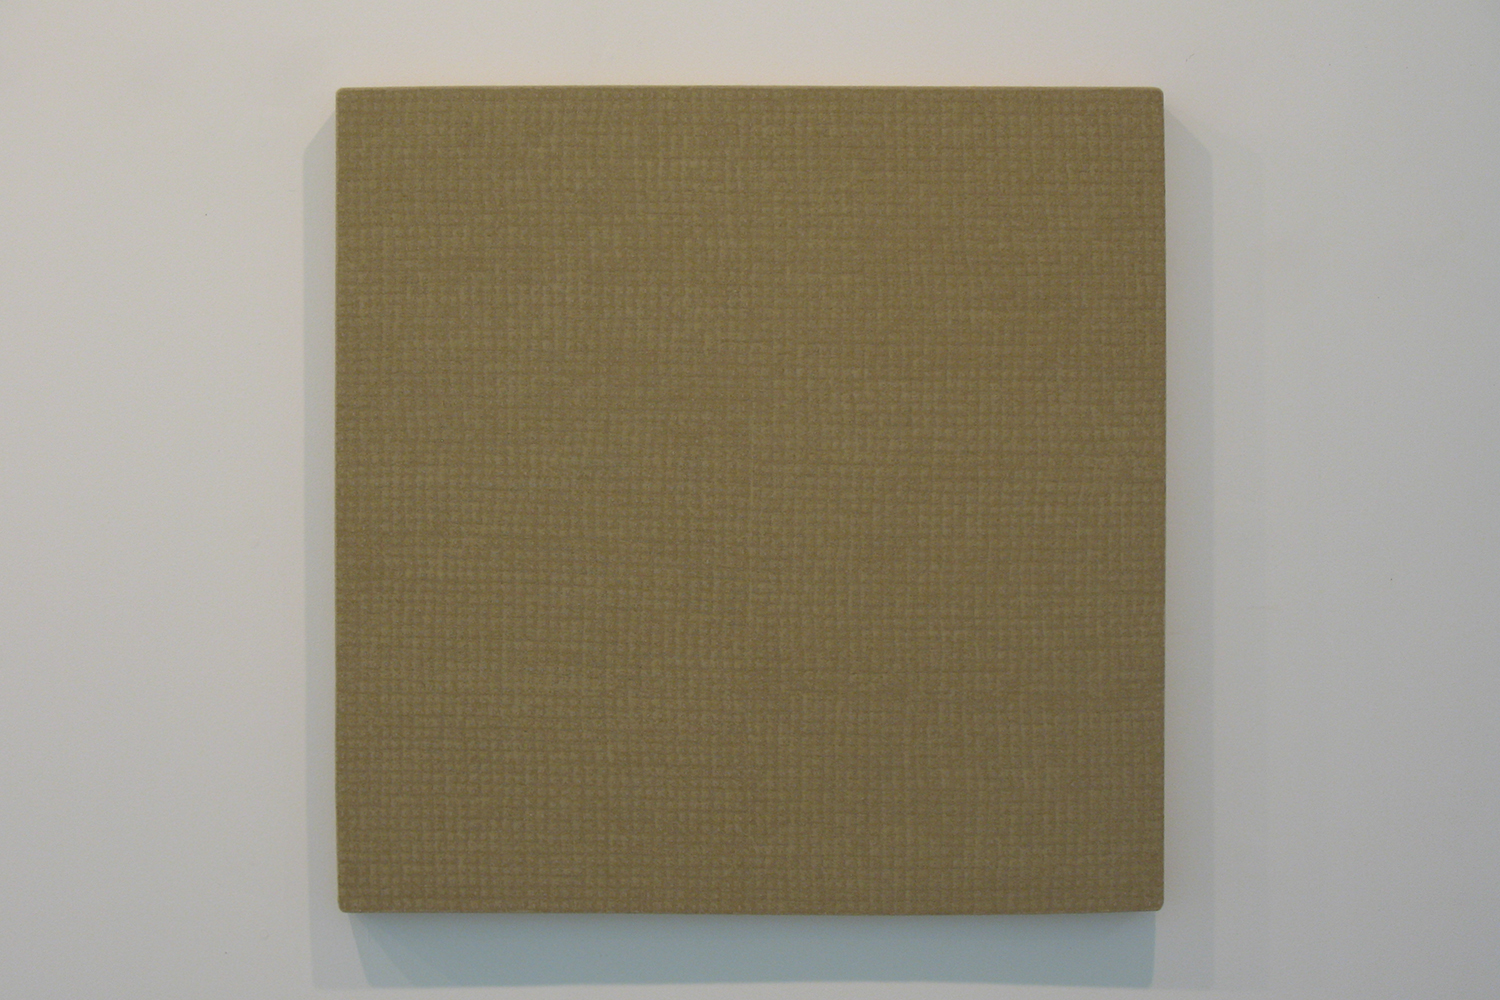 Hemp-square 09-01|Acylic on canvas|72.5 x 72.5 cm|2009